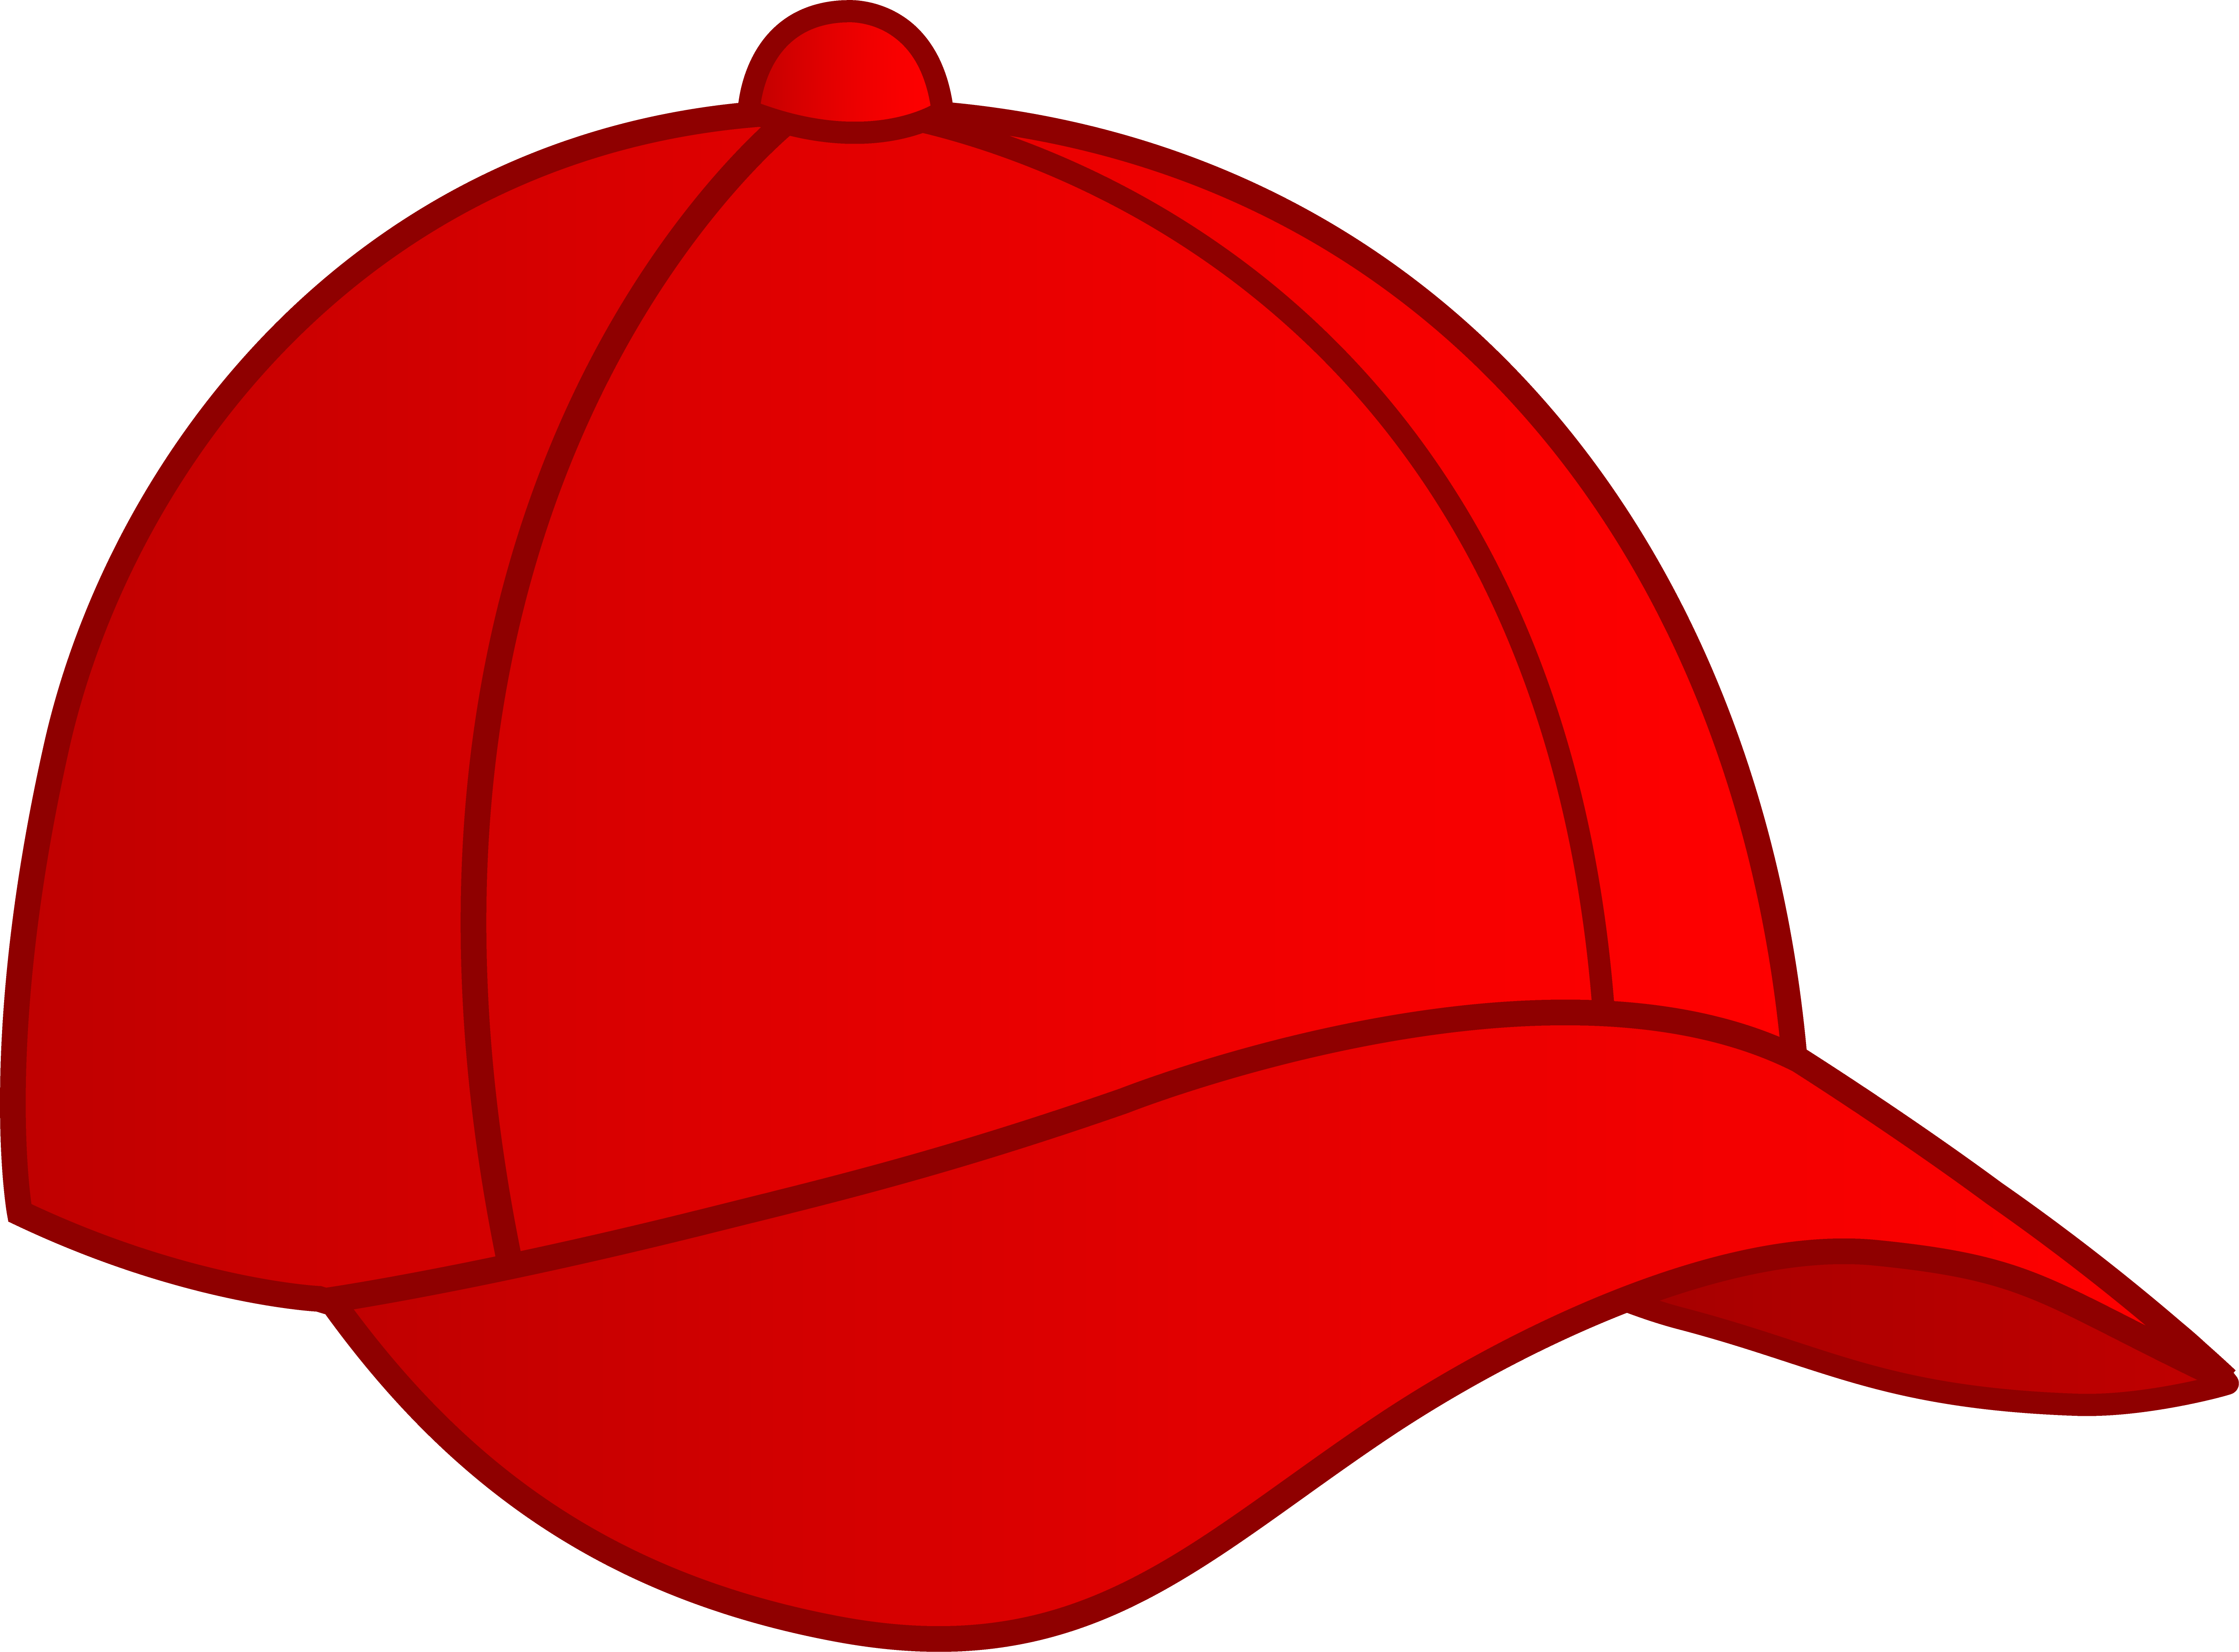 baseball hat clipart at getdrawings com free for personal use rh getdrawings com hat clipart black hat clipart black and white